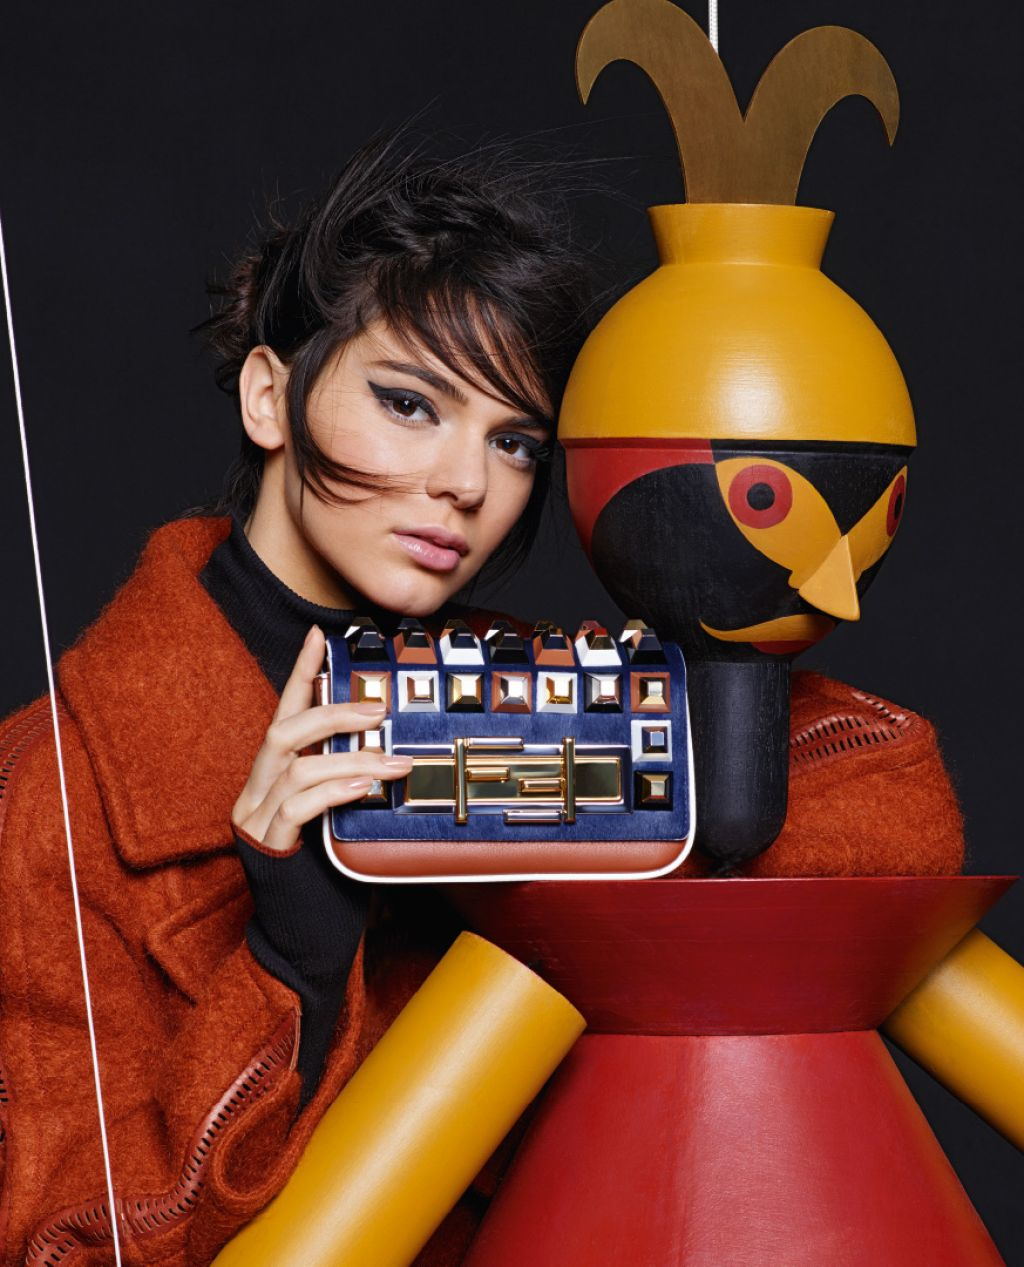 kendall-jenner-fendi-fall-winter-2015-ad-campaign_5